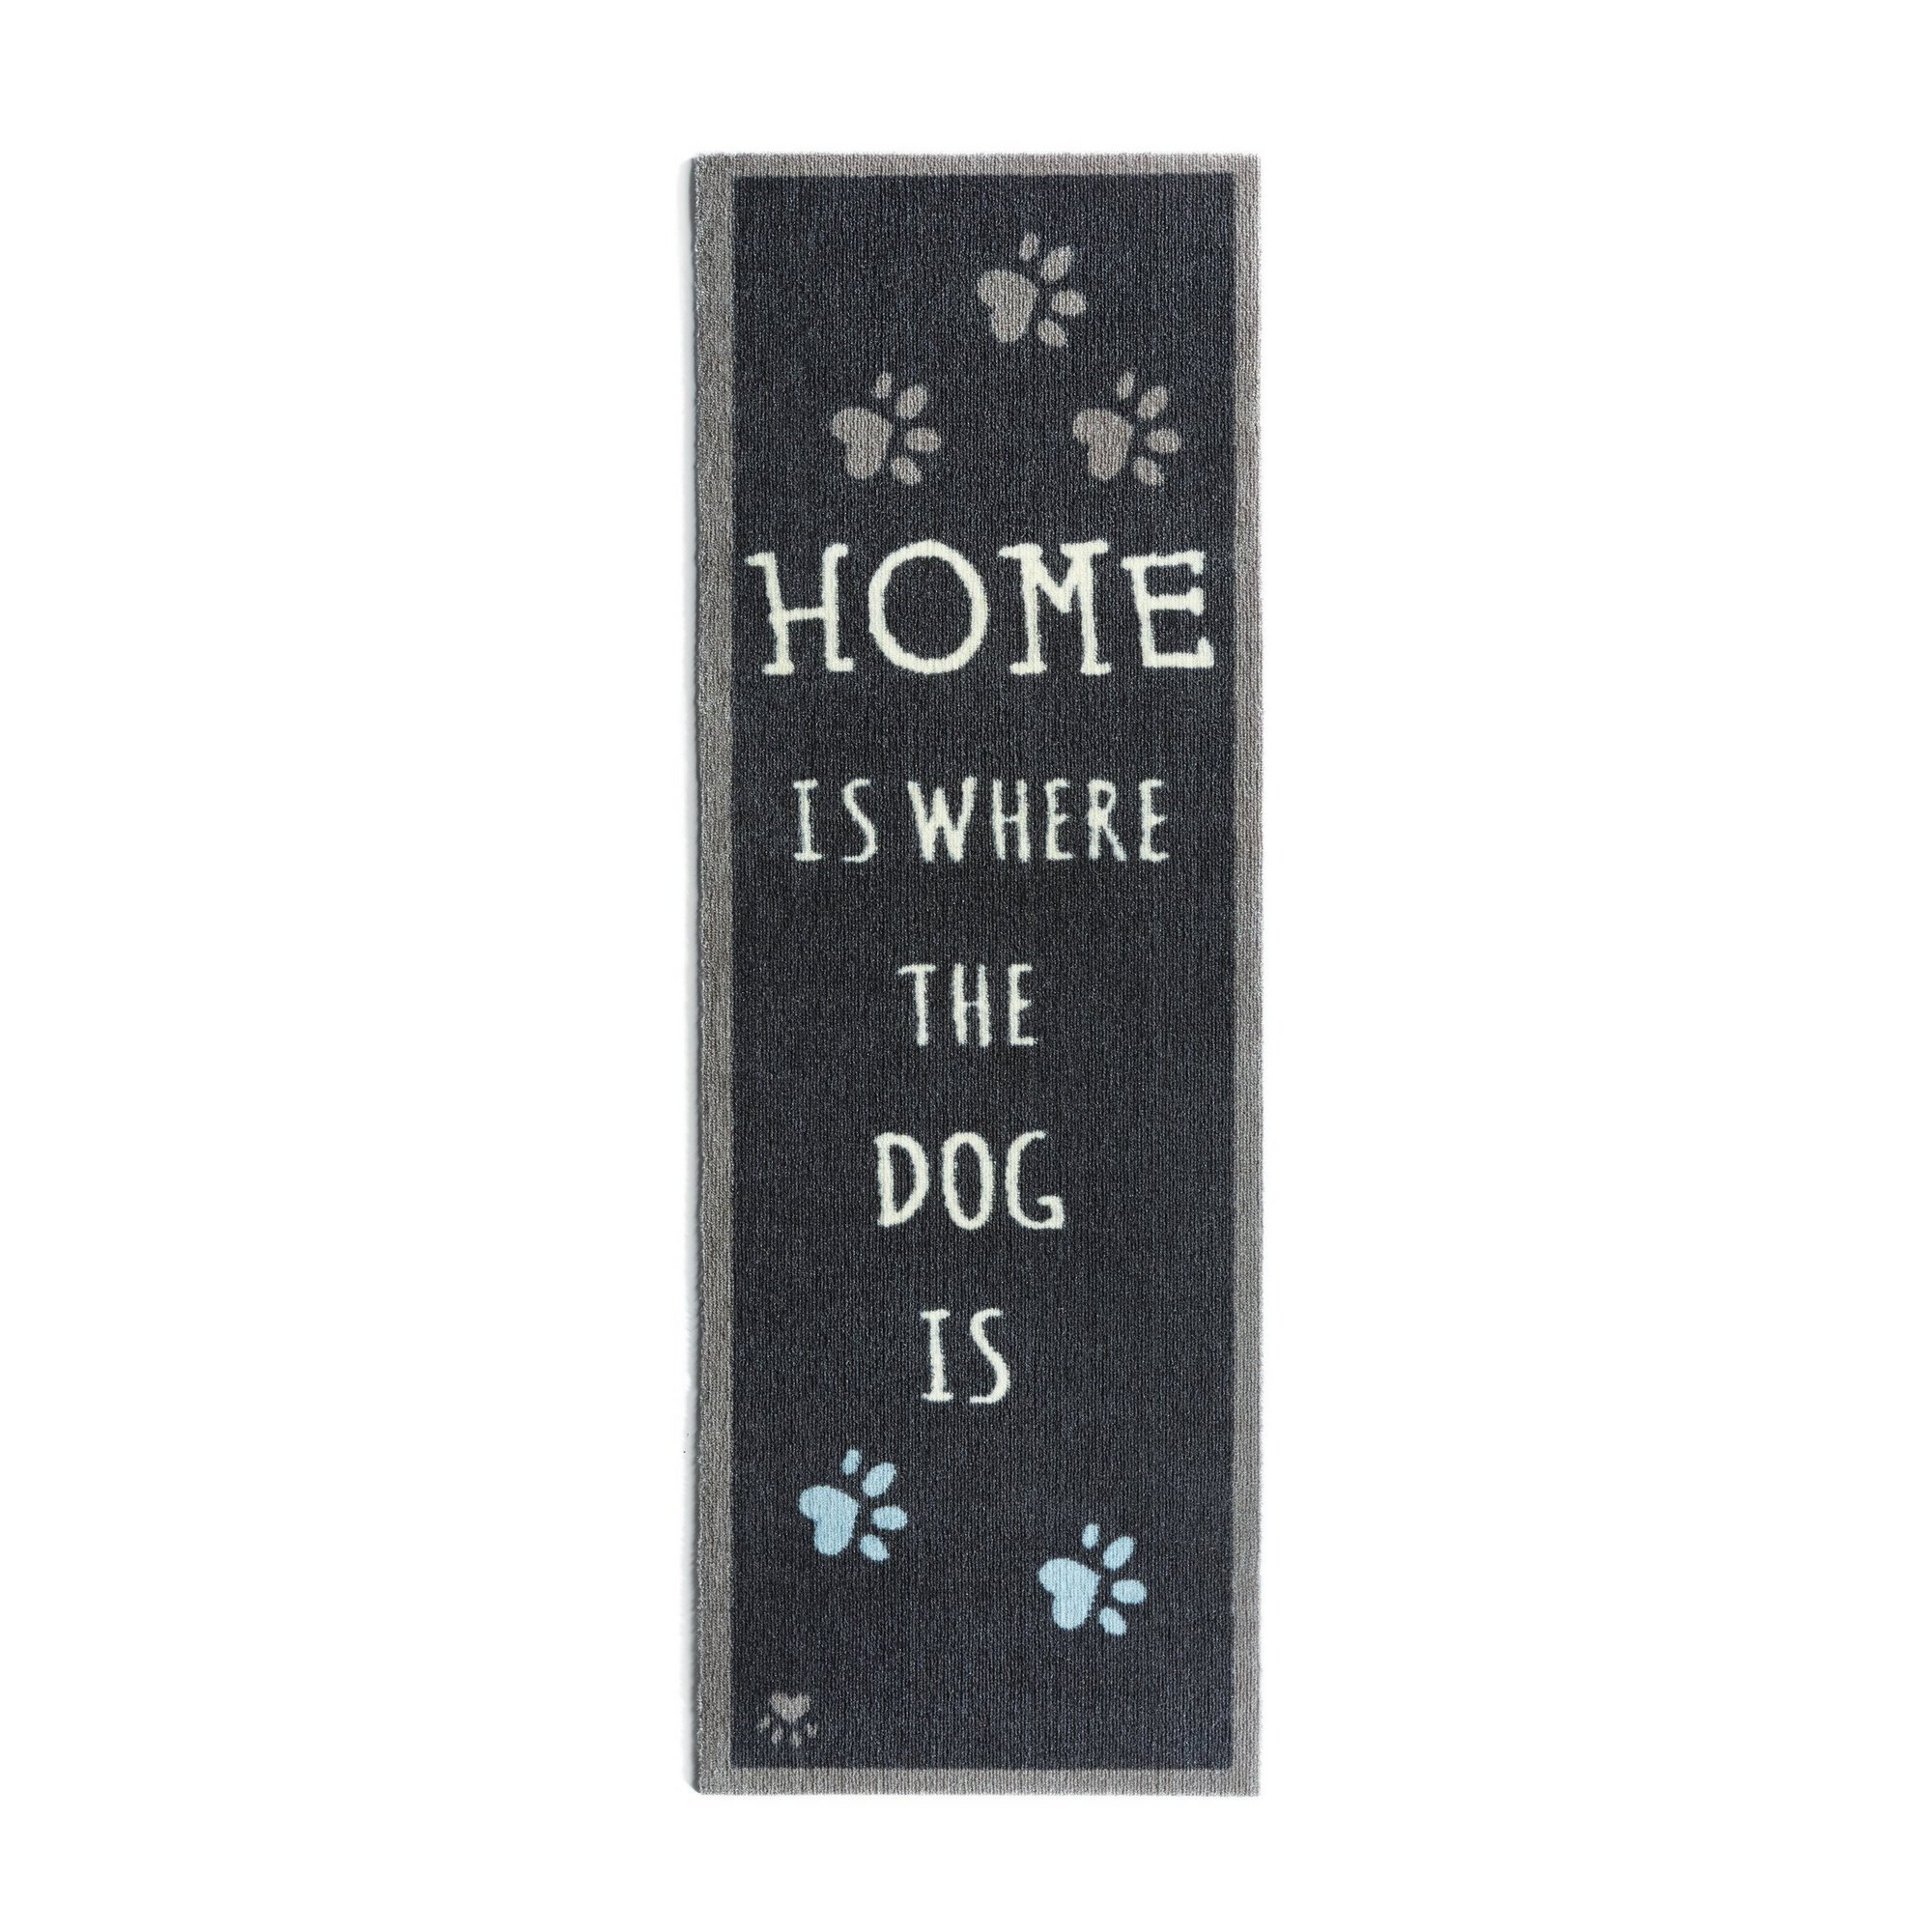 Image of Home Is Where the Dog Is Runner - Howler and Scratch